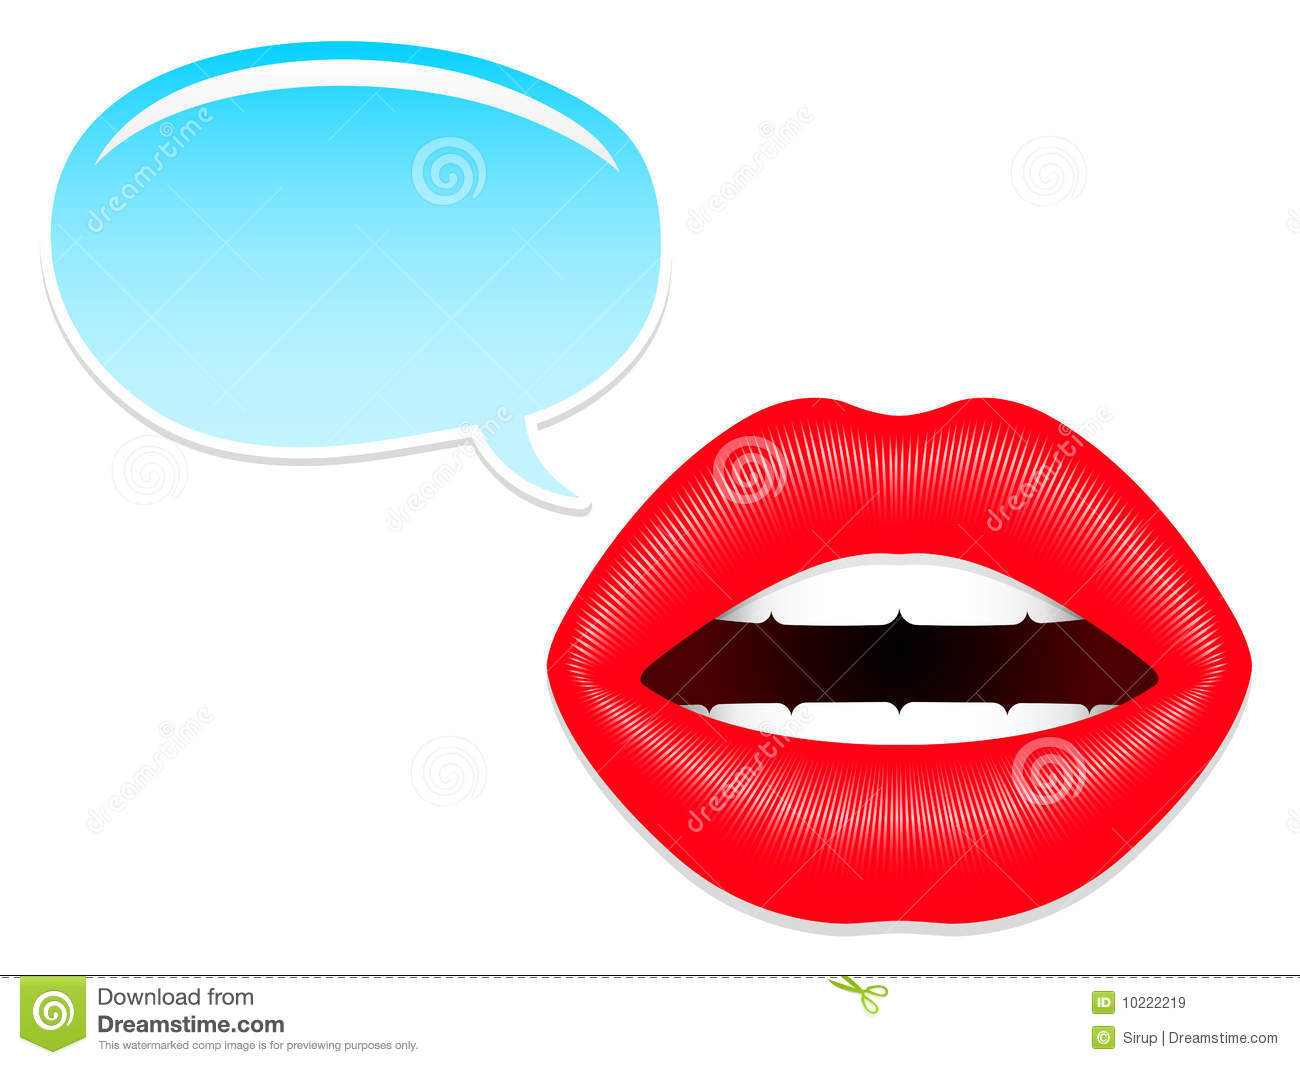 Royalty Free Stock Images Female Mouth Speech Bubbles Image10222219 on cartoon lips talking